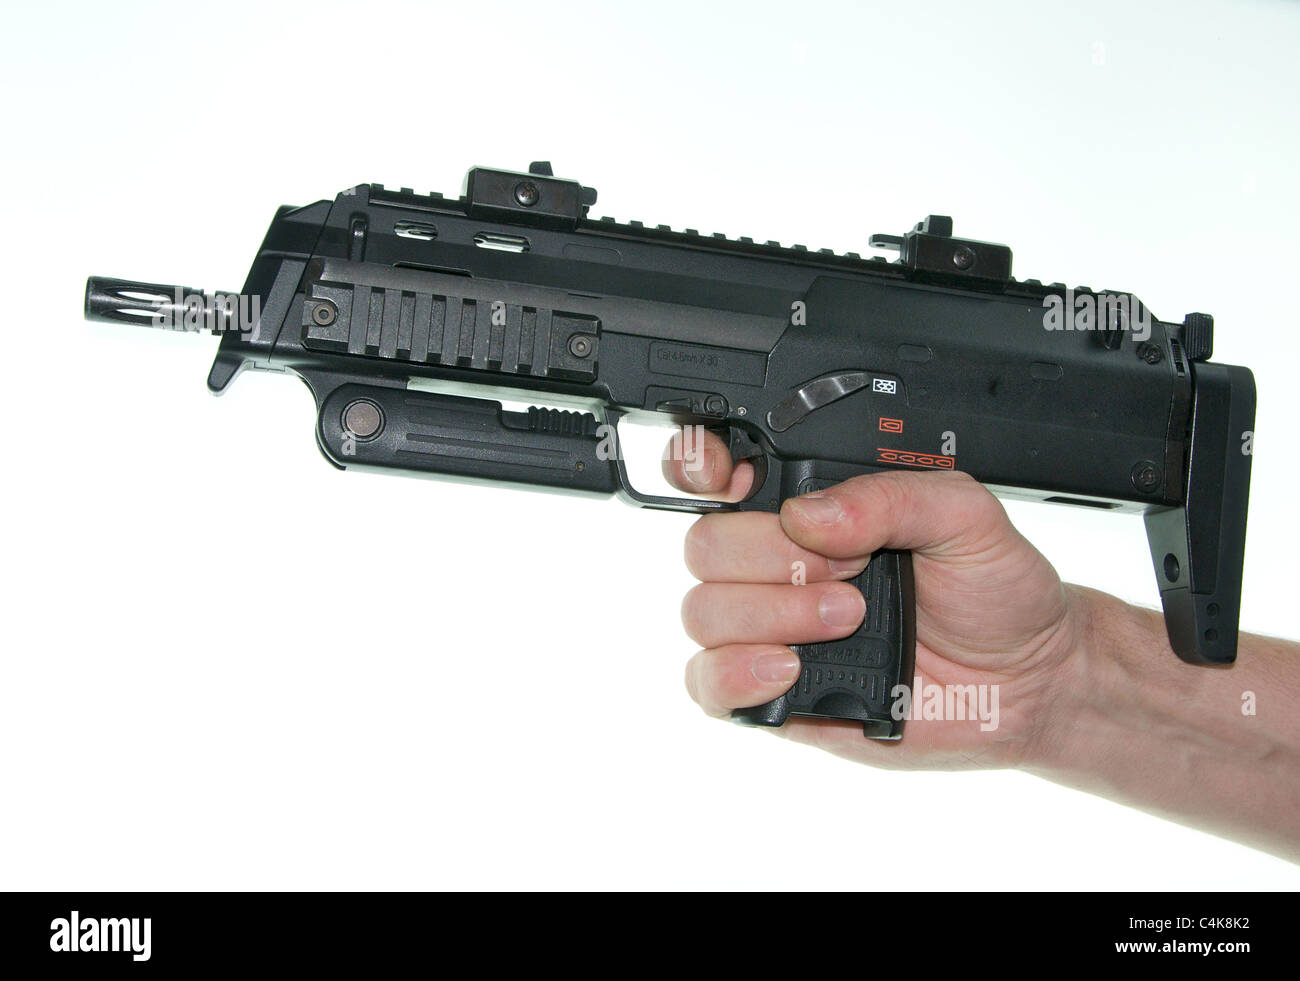 The Mp7 Is A German Submachine Gun Manufactured By Heckler